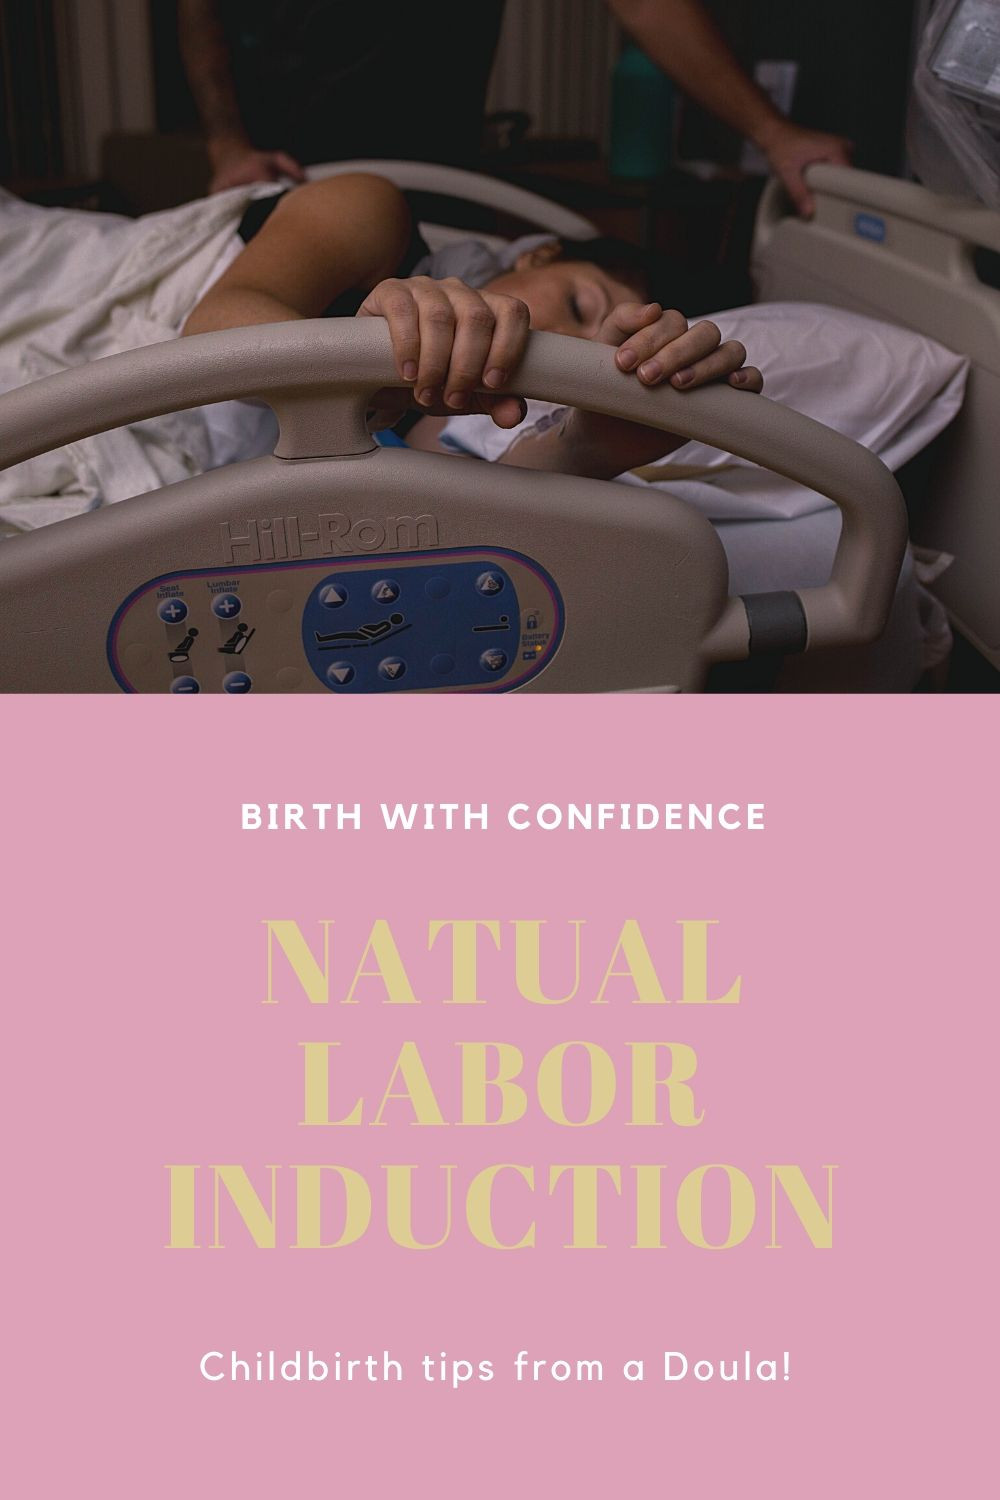 Natural Labor induction methods, childbirth tips from a doula, woman laboring in bed, graphic to advertise natural labor inductions methods castor oil and herbal tea red raspberry leaf tea sex for labor and other pregnancy and childbirth tips